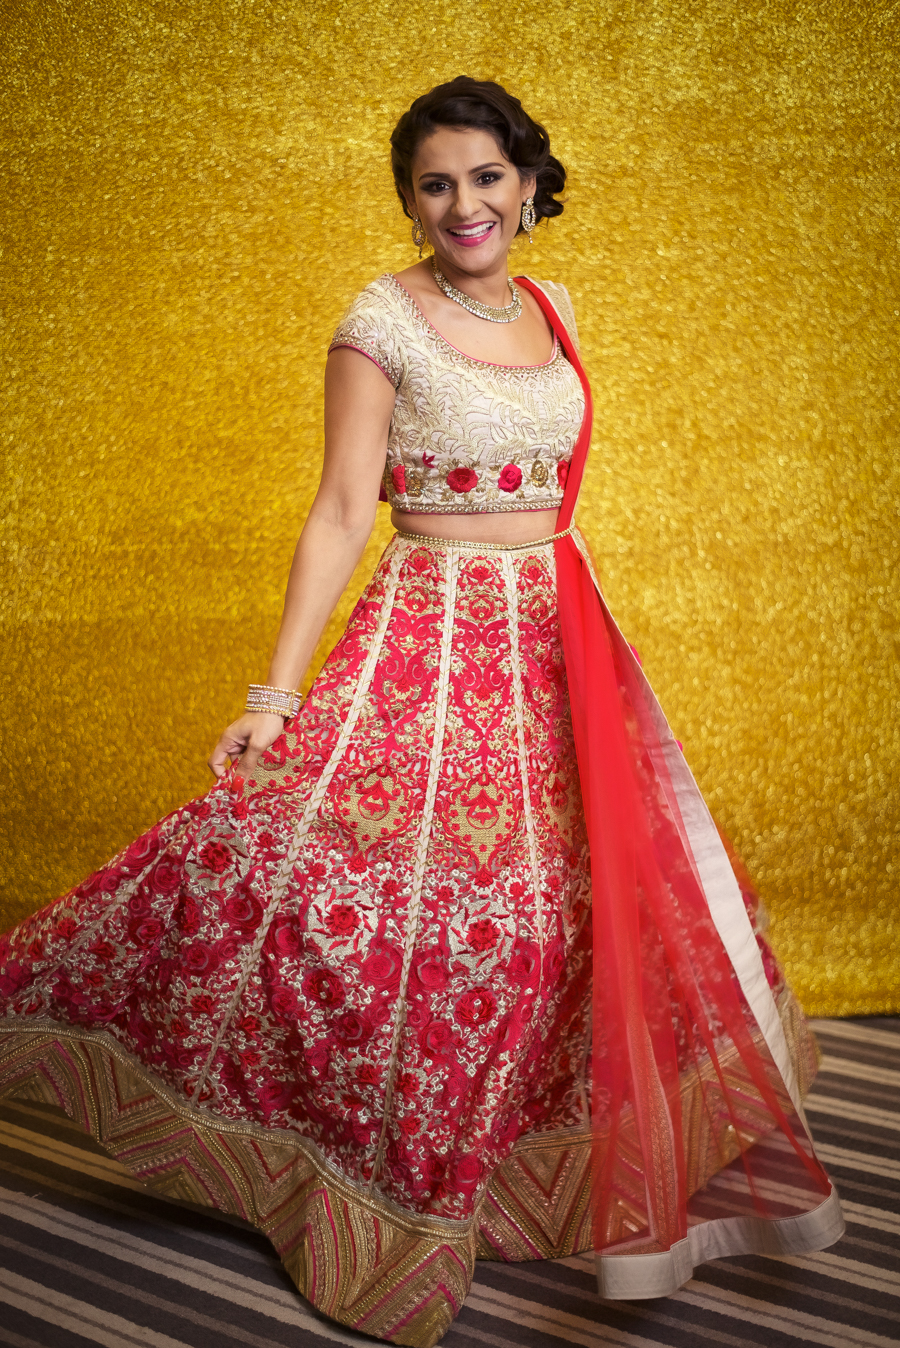 My Big Bash at 40 - I twirl in my lehenga